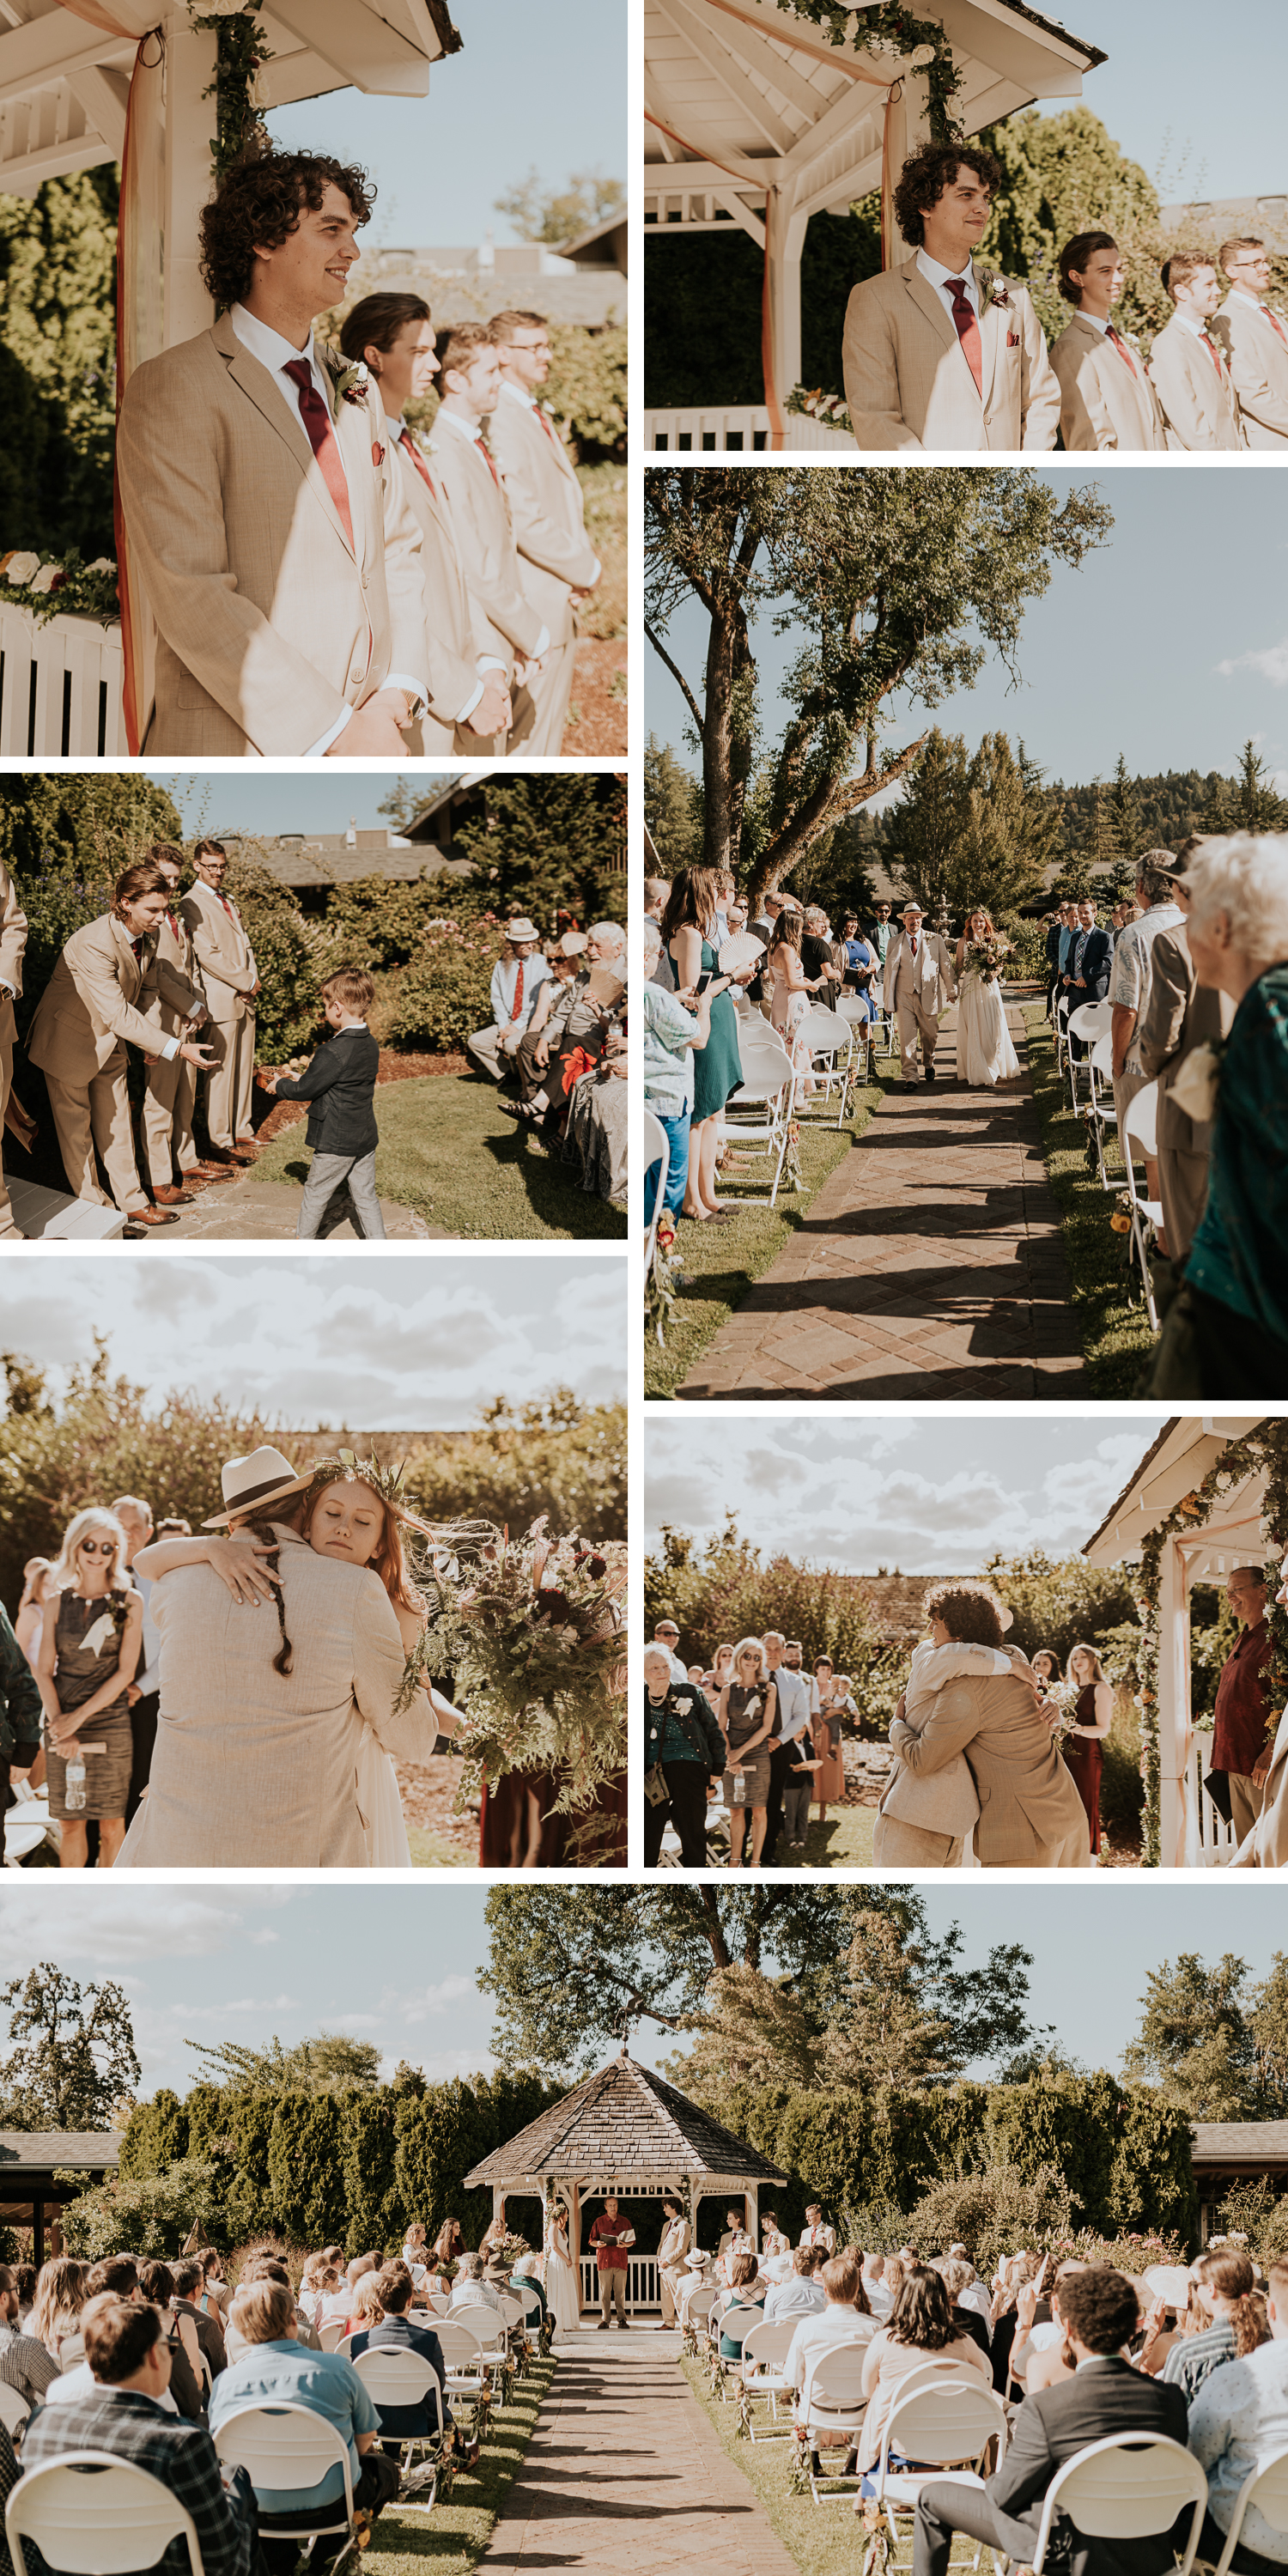 VillageGreenWedding11.jpg